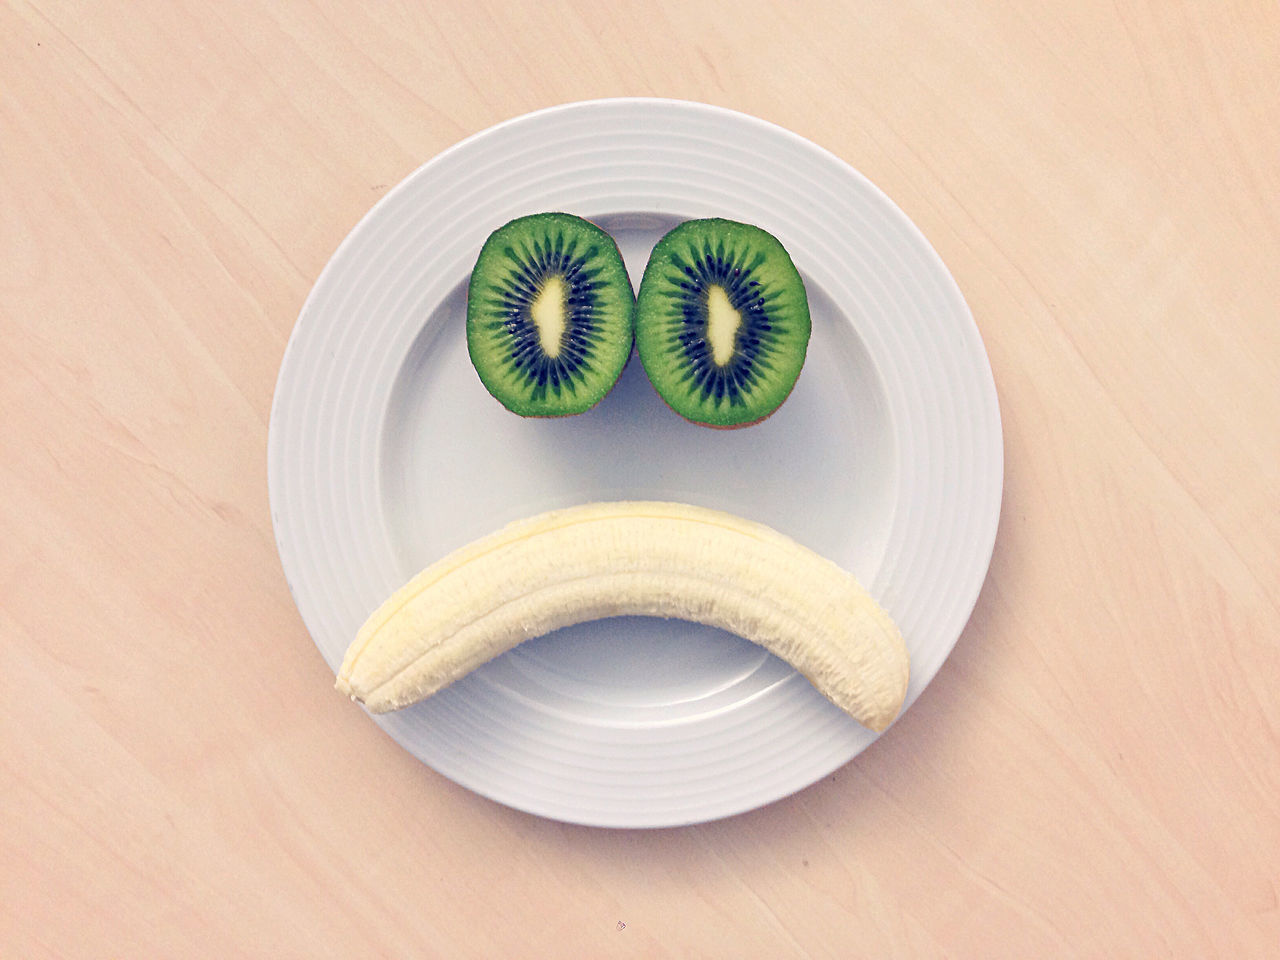 Beautiful stock photos of healthy eating, Anthropomorphic Face, Art, Art And Craft, Banana